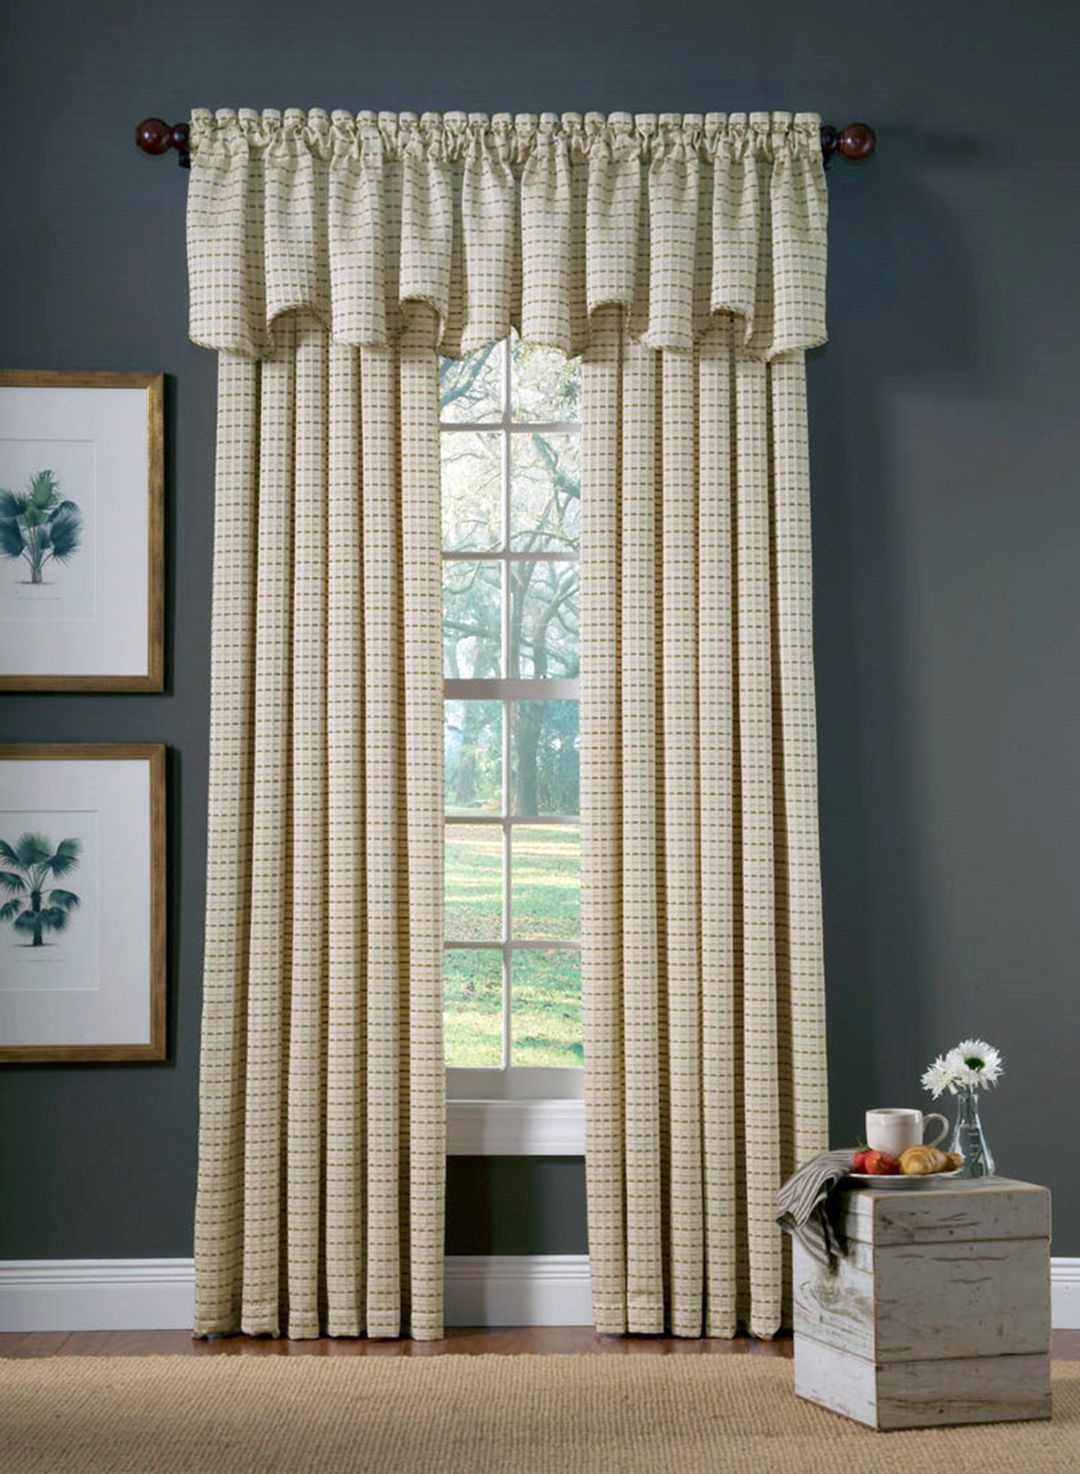 10 Charming Curtains Design Ideas To Beautify Your Home In 2020